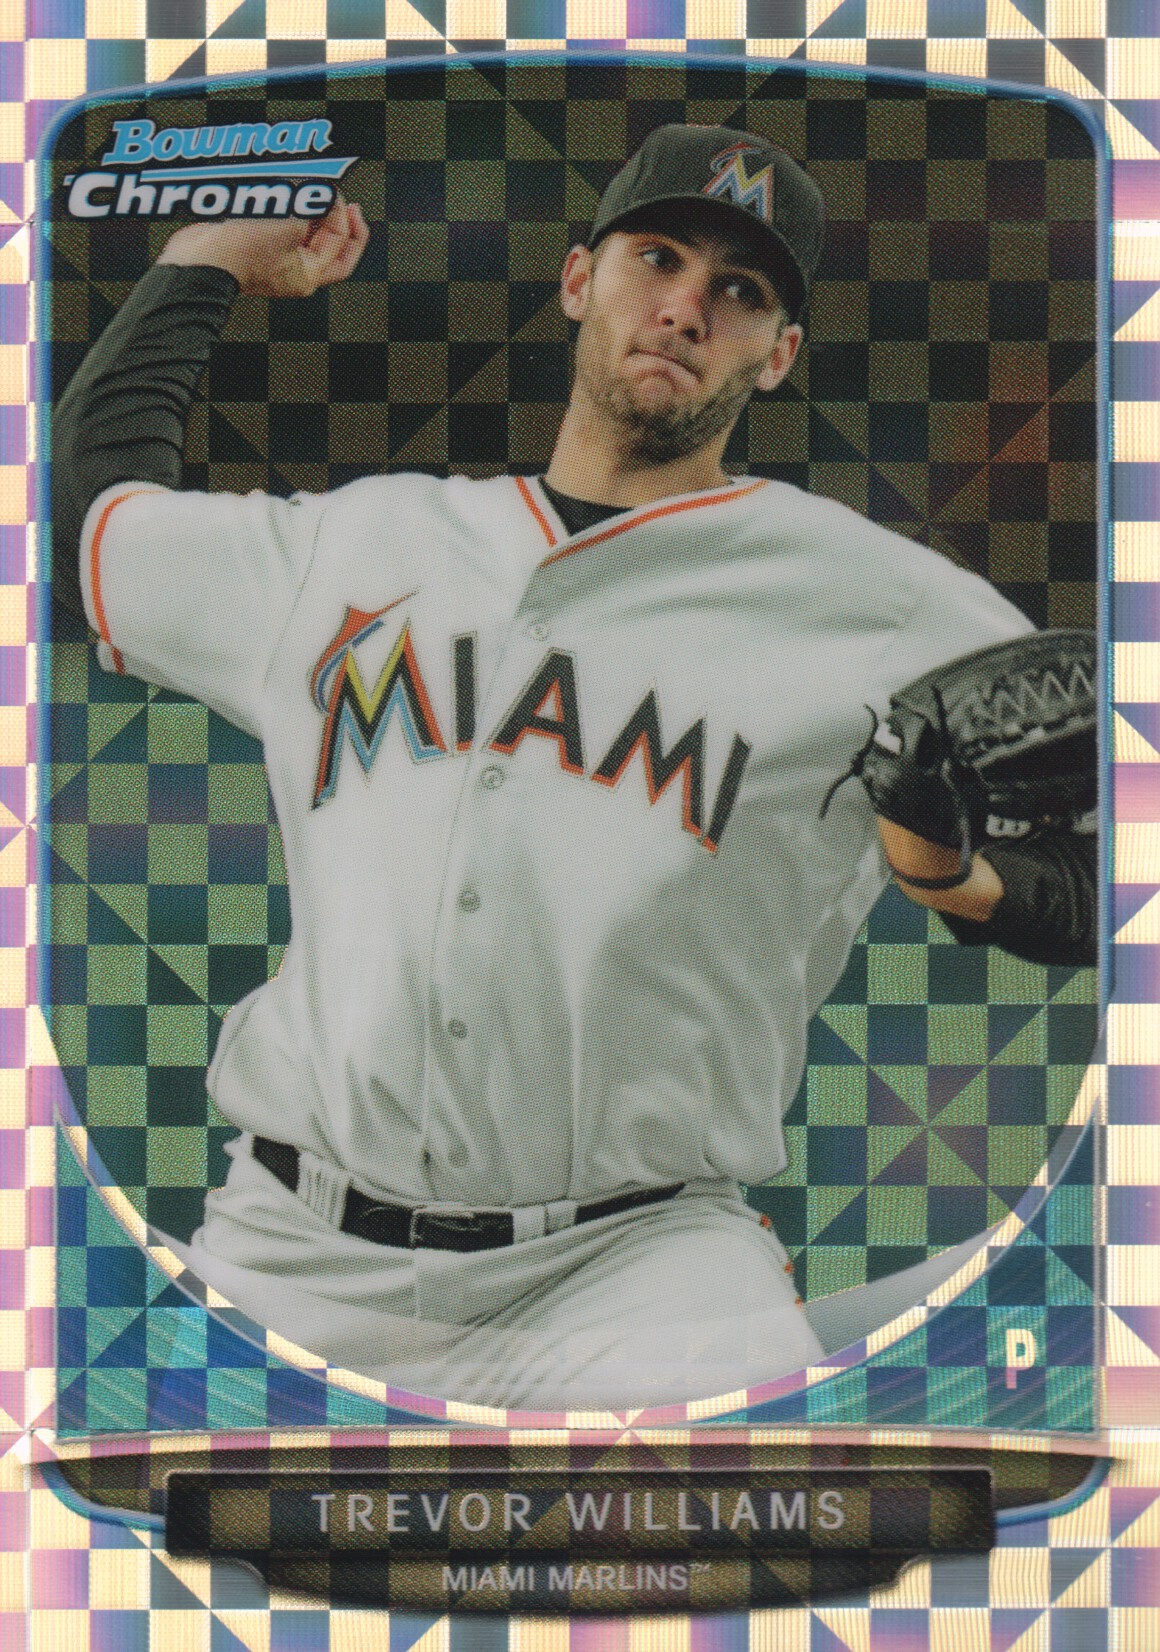 2013 Bowman Chrome Mini X-fractors #211 Trevor Williams